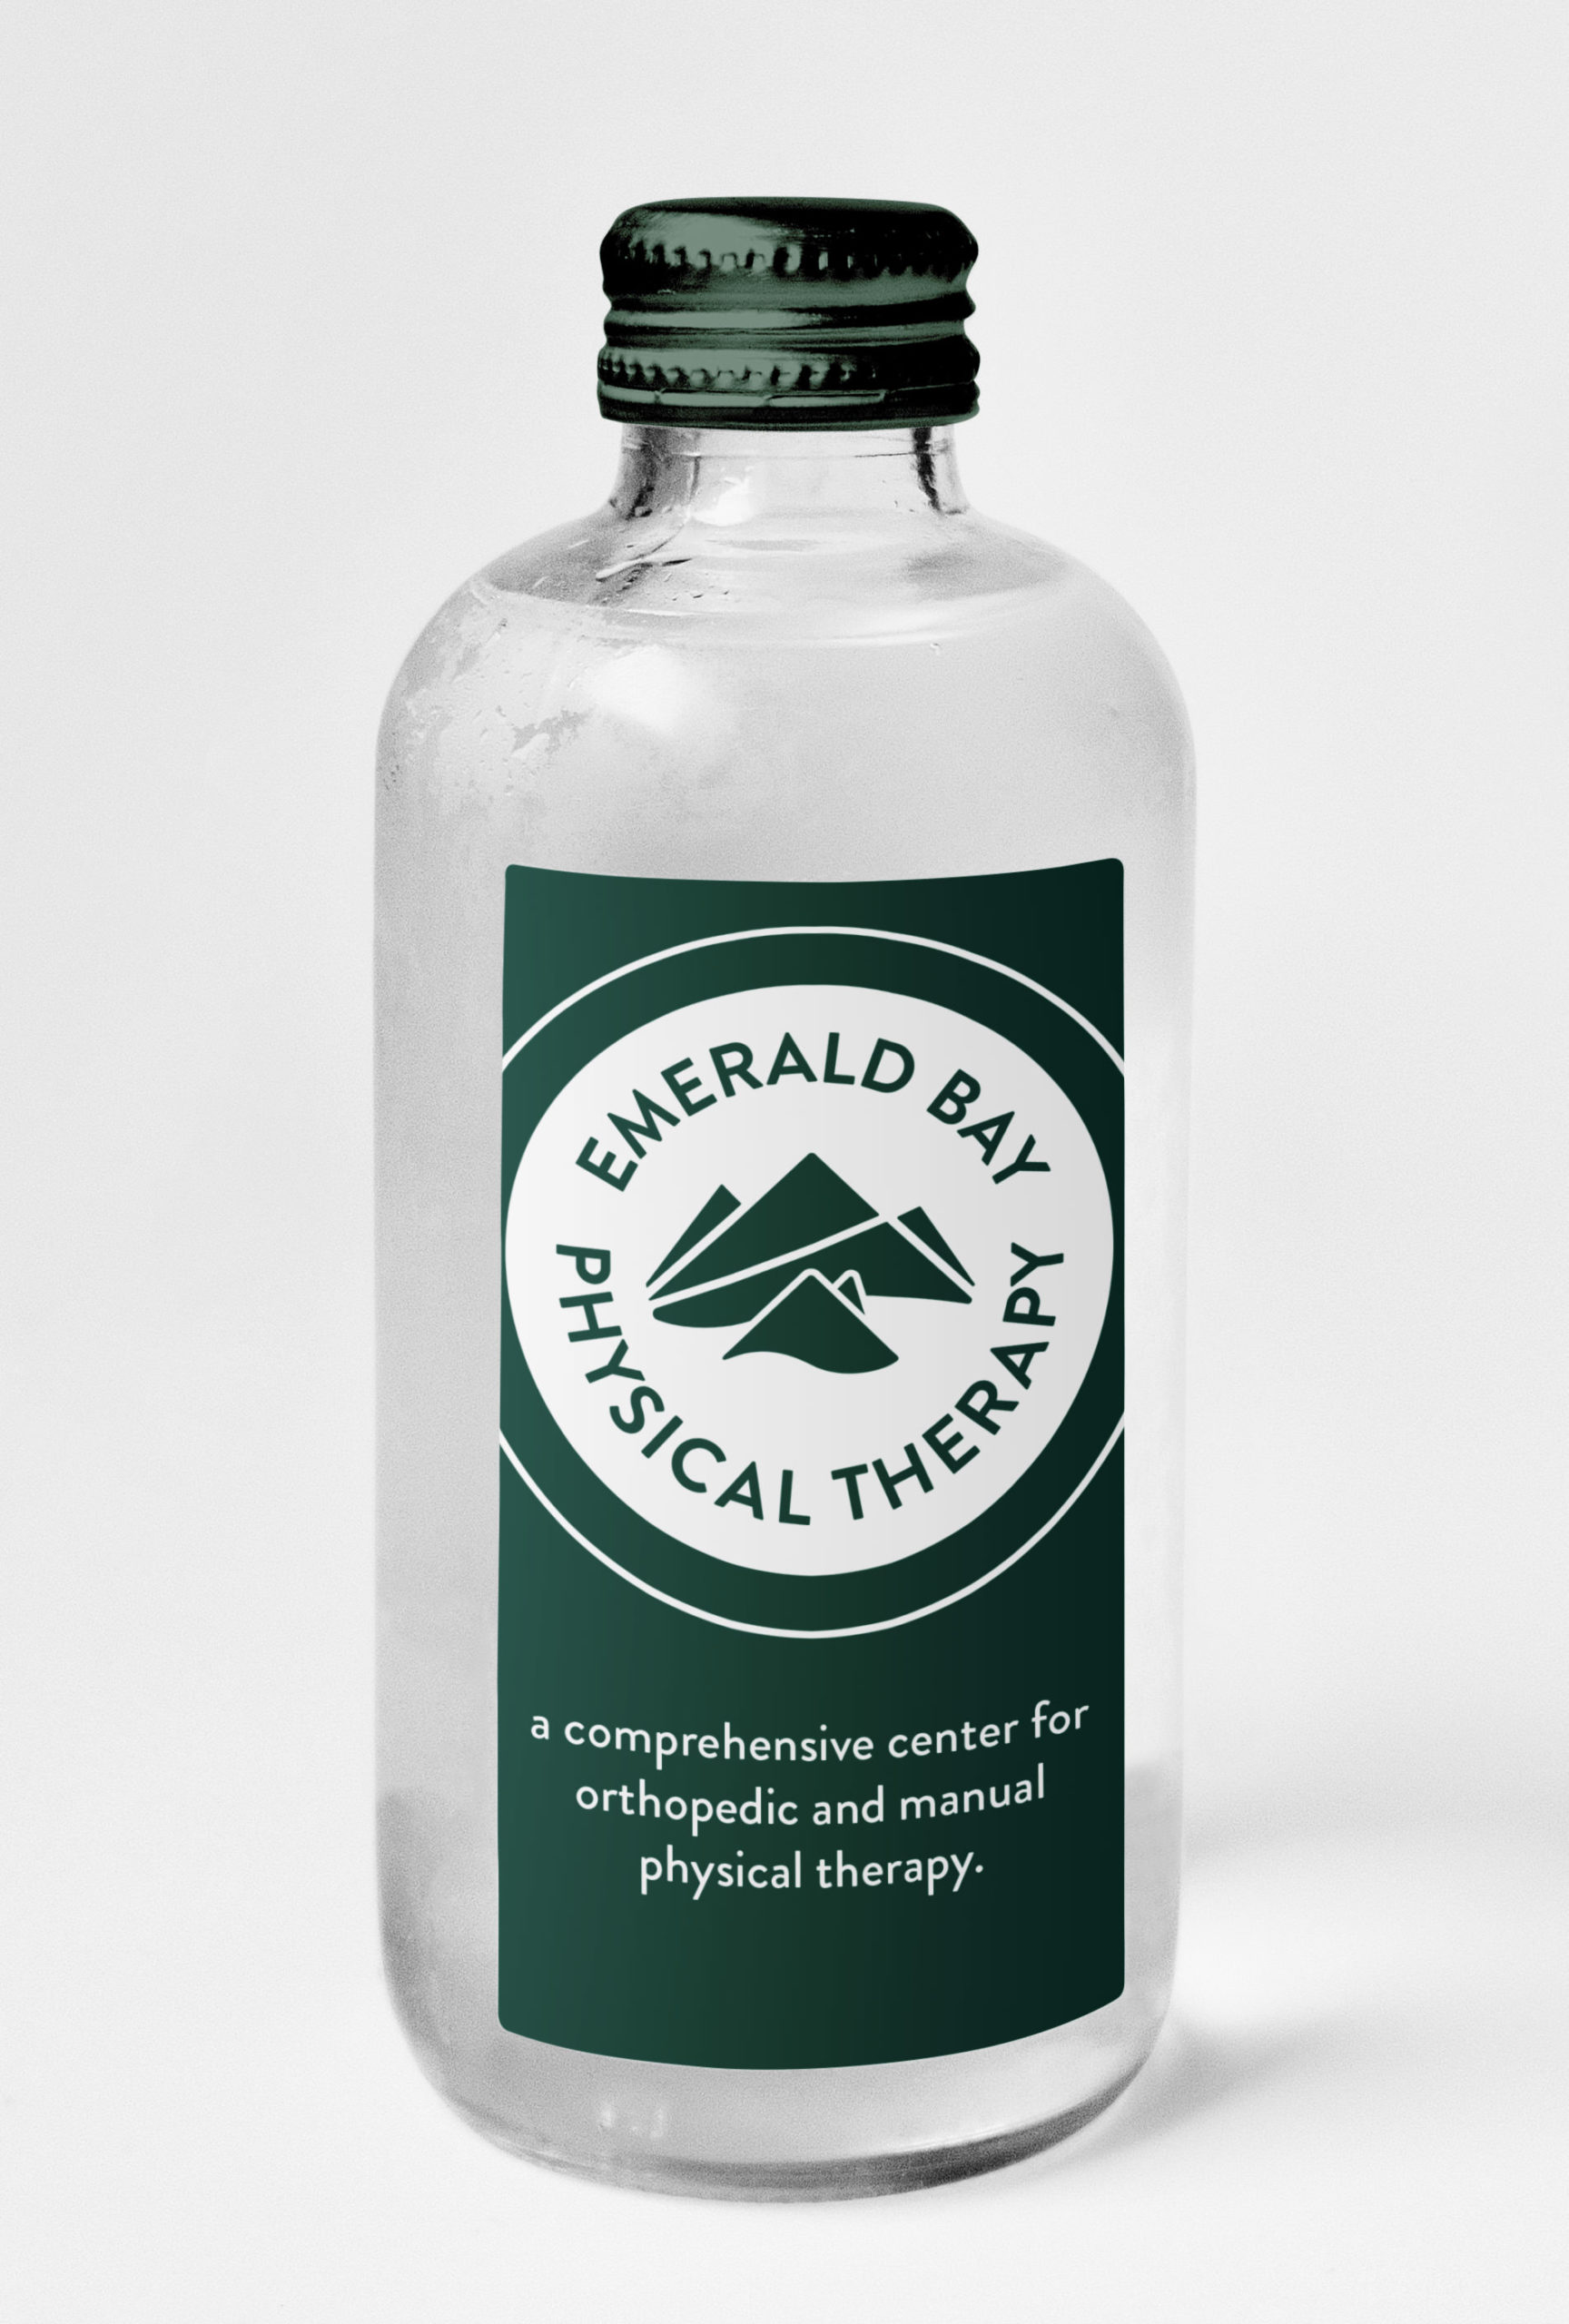 emerald bay physical therapy branding on a glass bottle